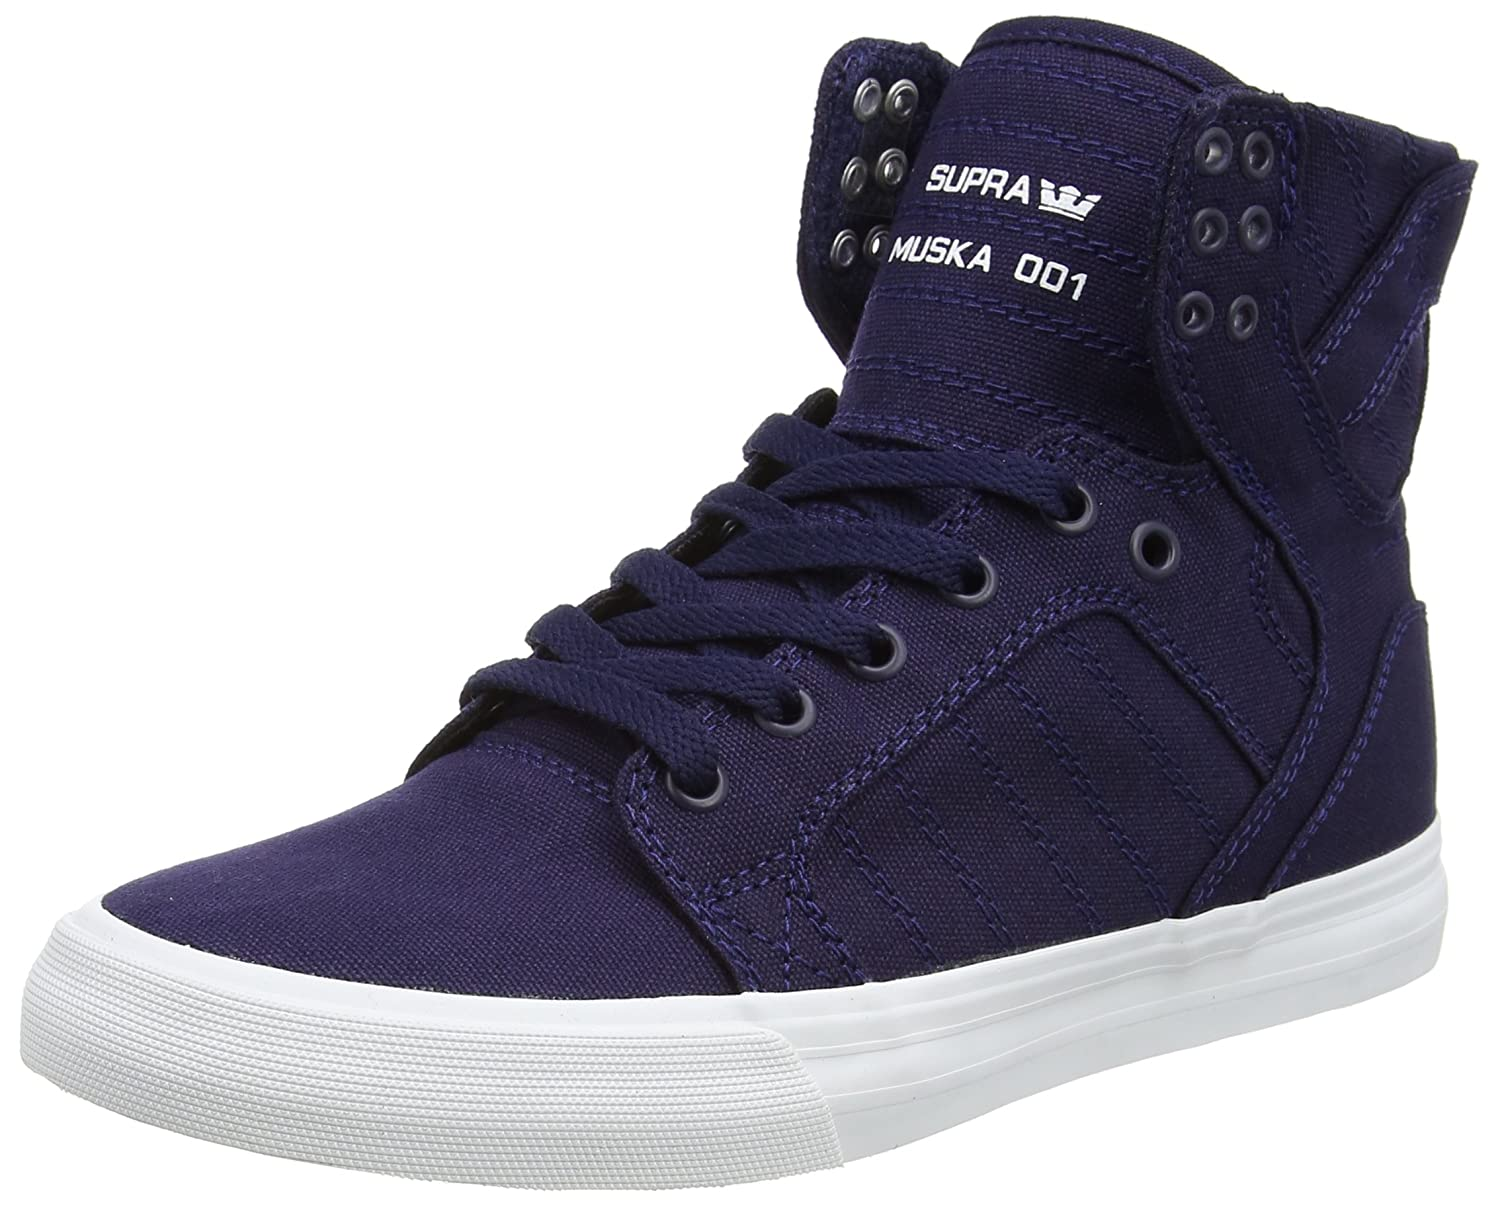 Shoes Supra skytop white advise to wear for autumn in 2019